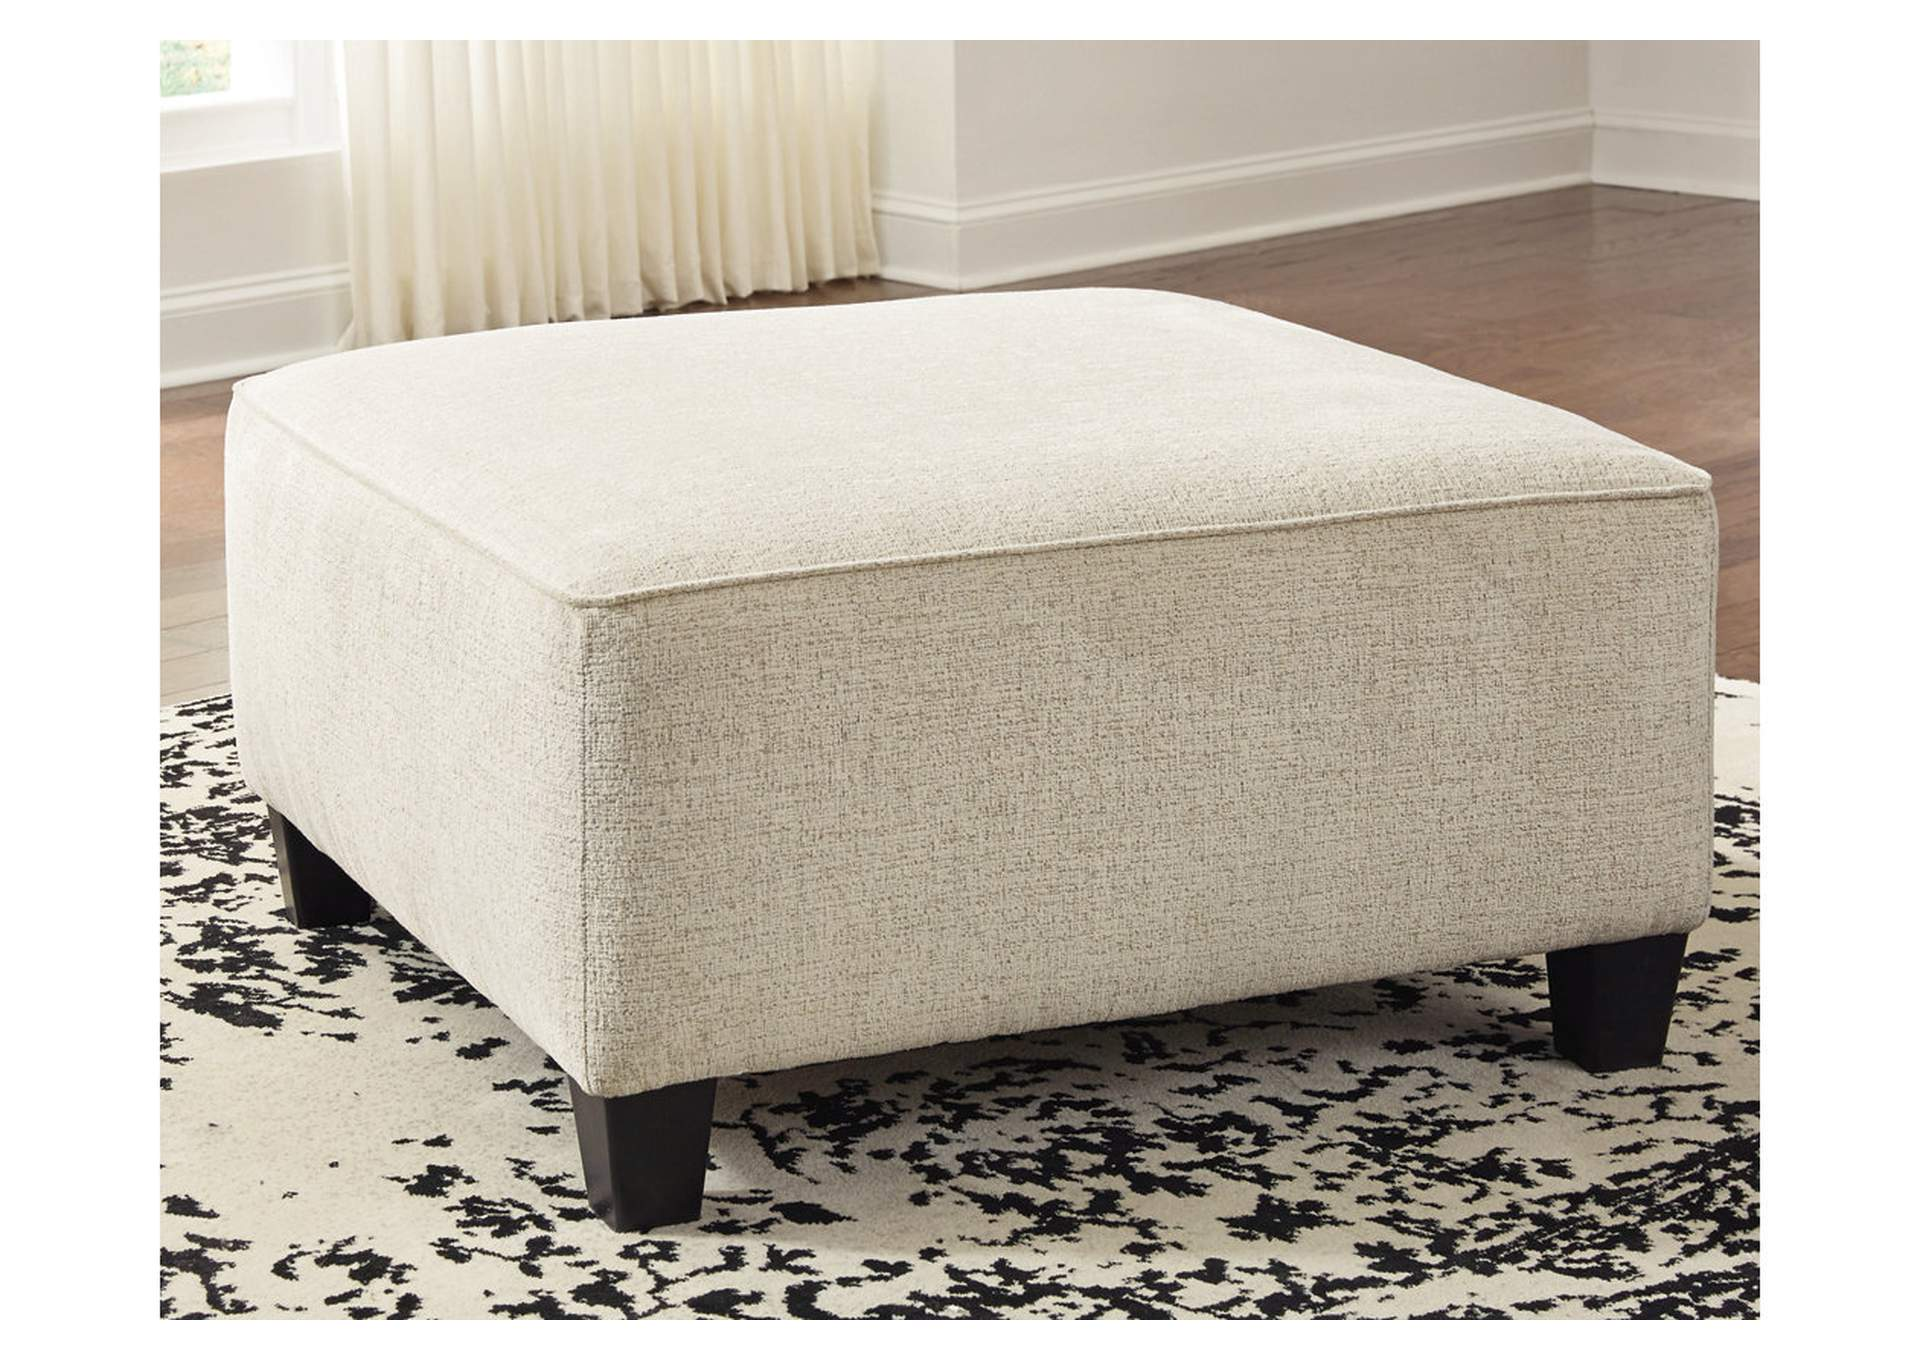 Abinger Oversized Accent Ottoman,Signature Design By Ashley